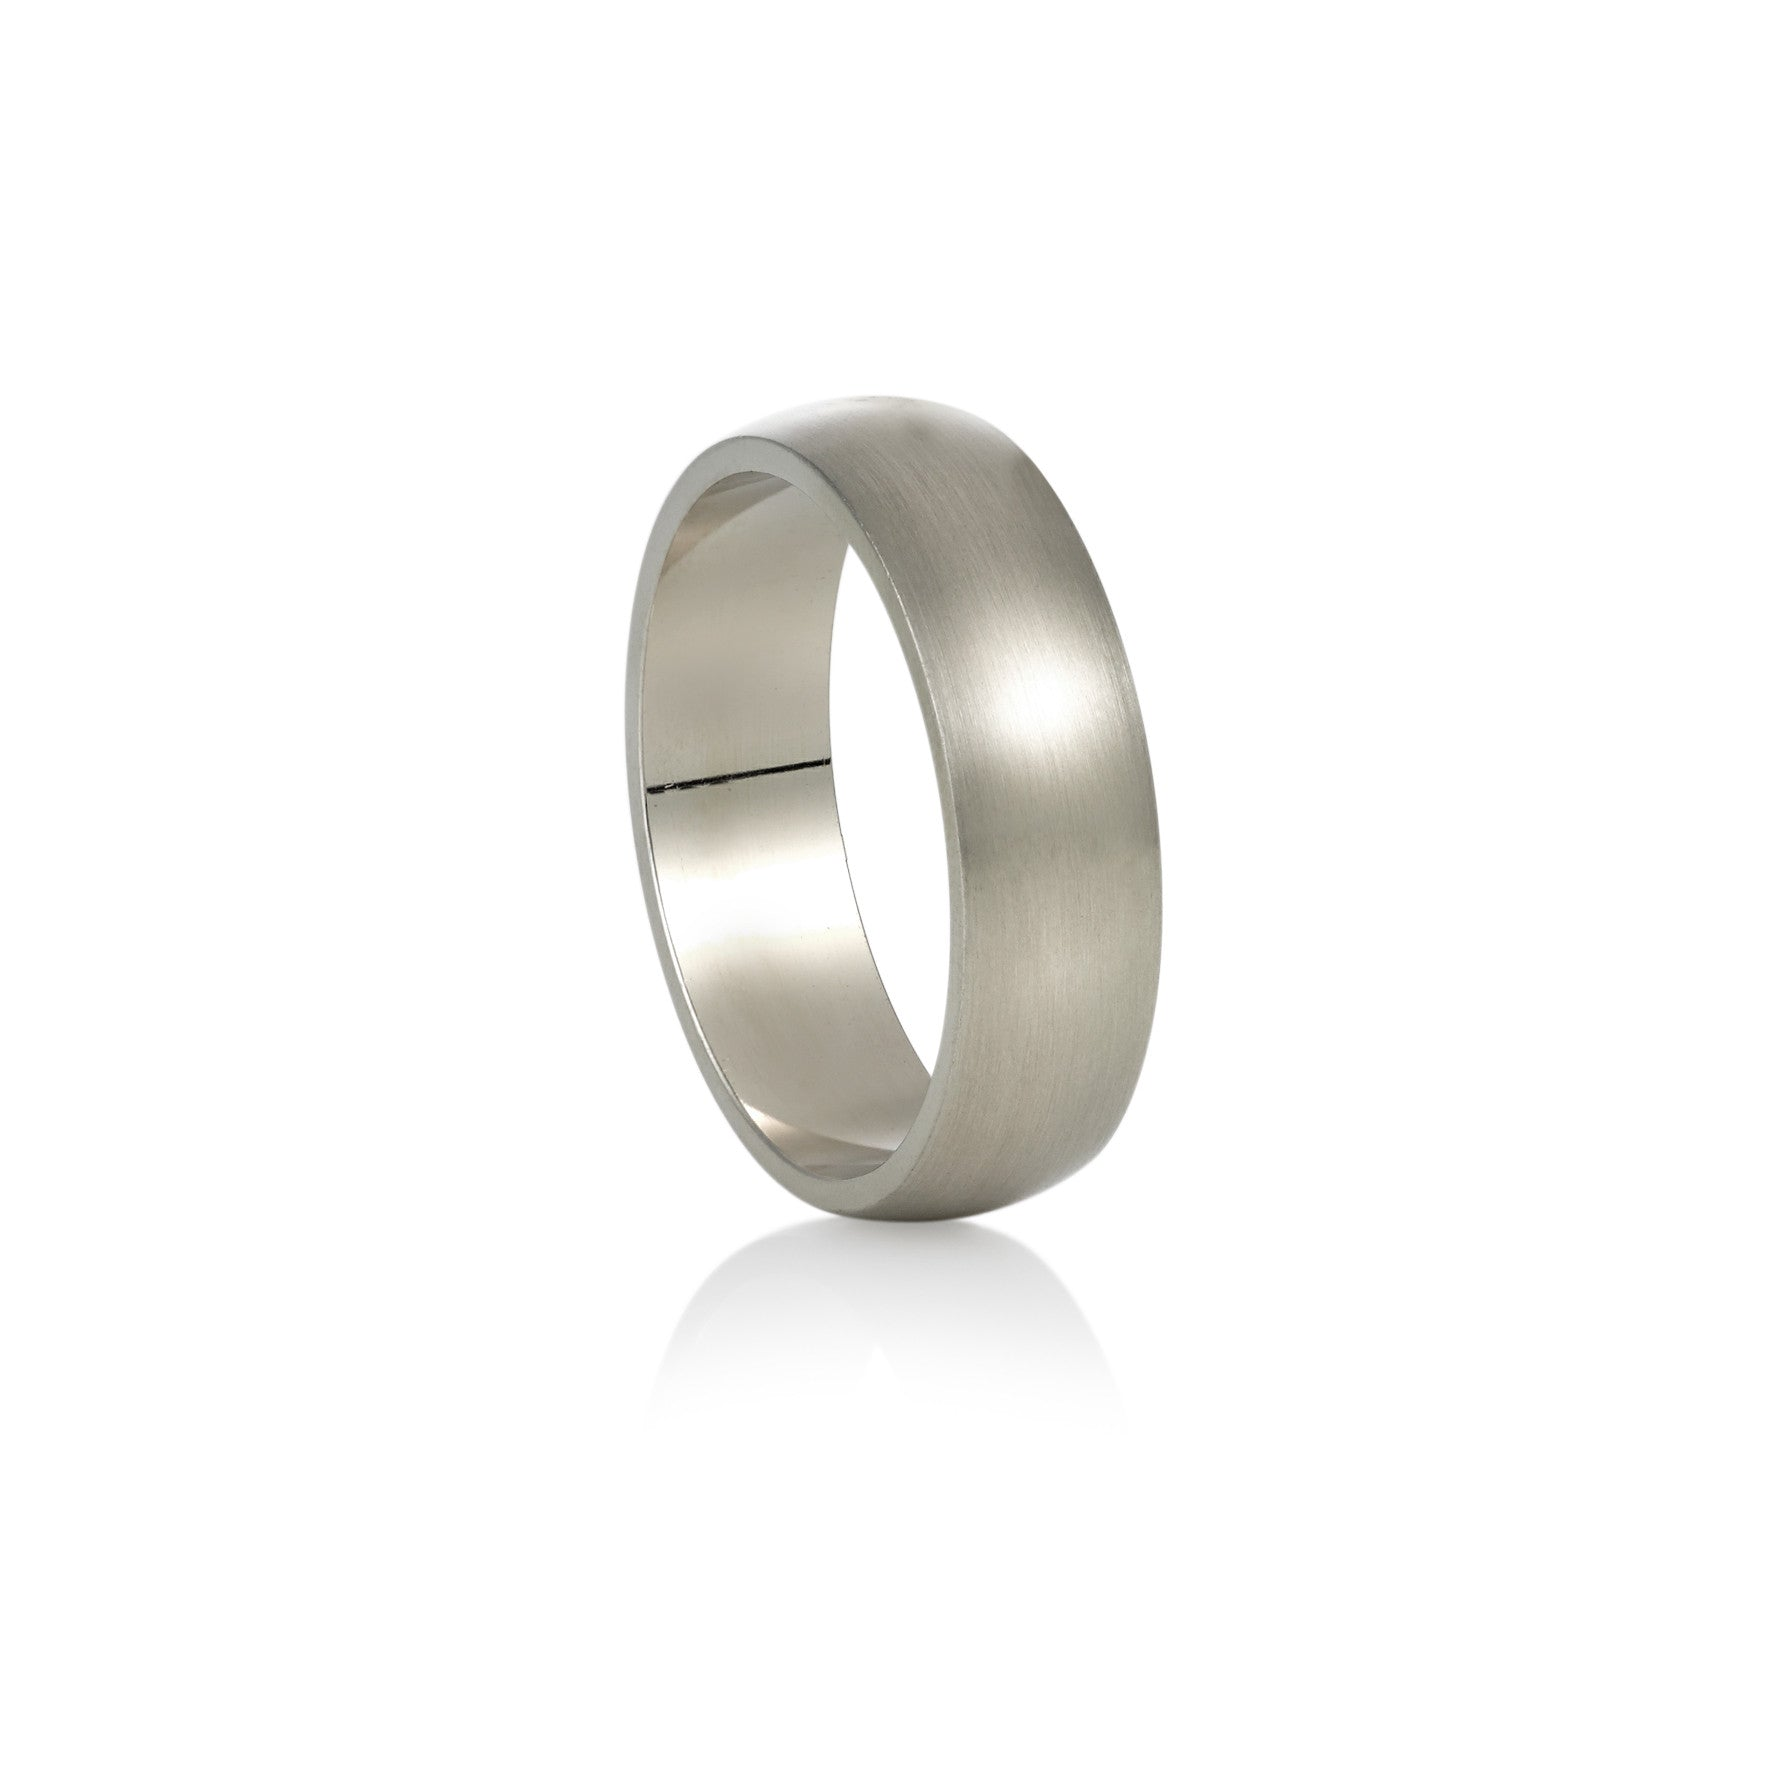 White Gold Wedding Band - Half Round Emery Finish